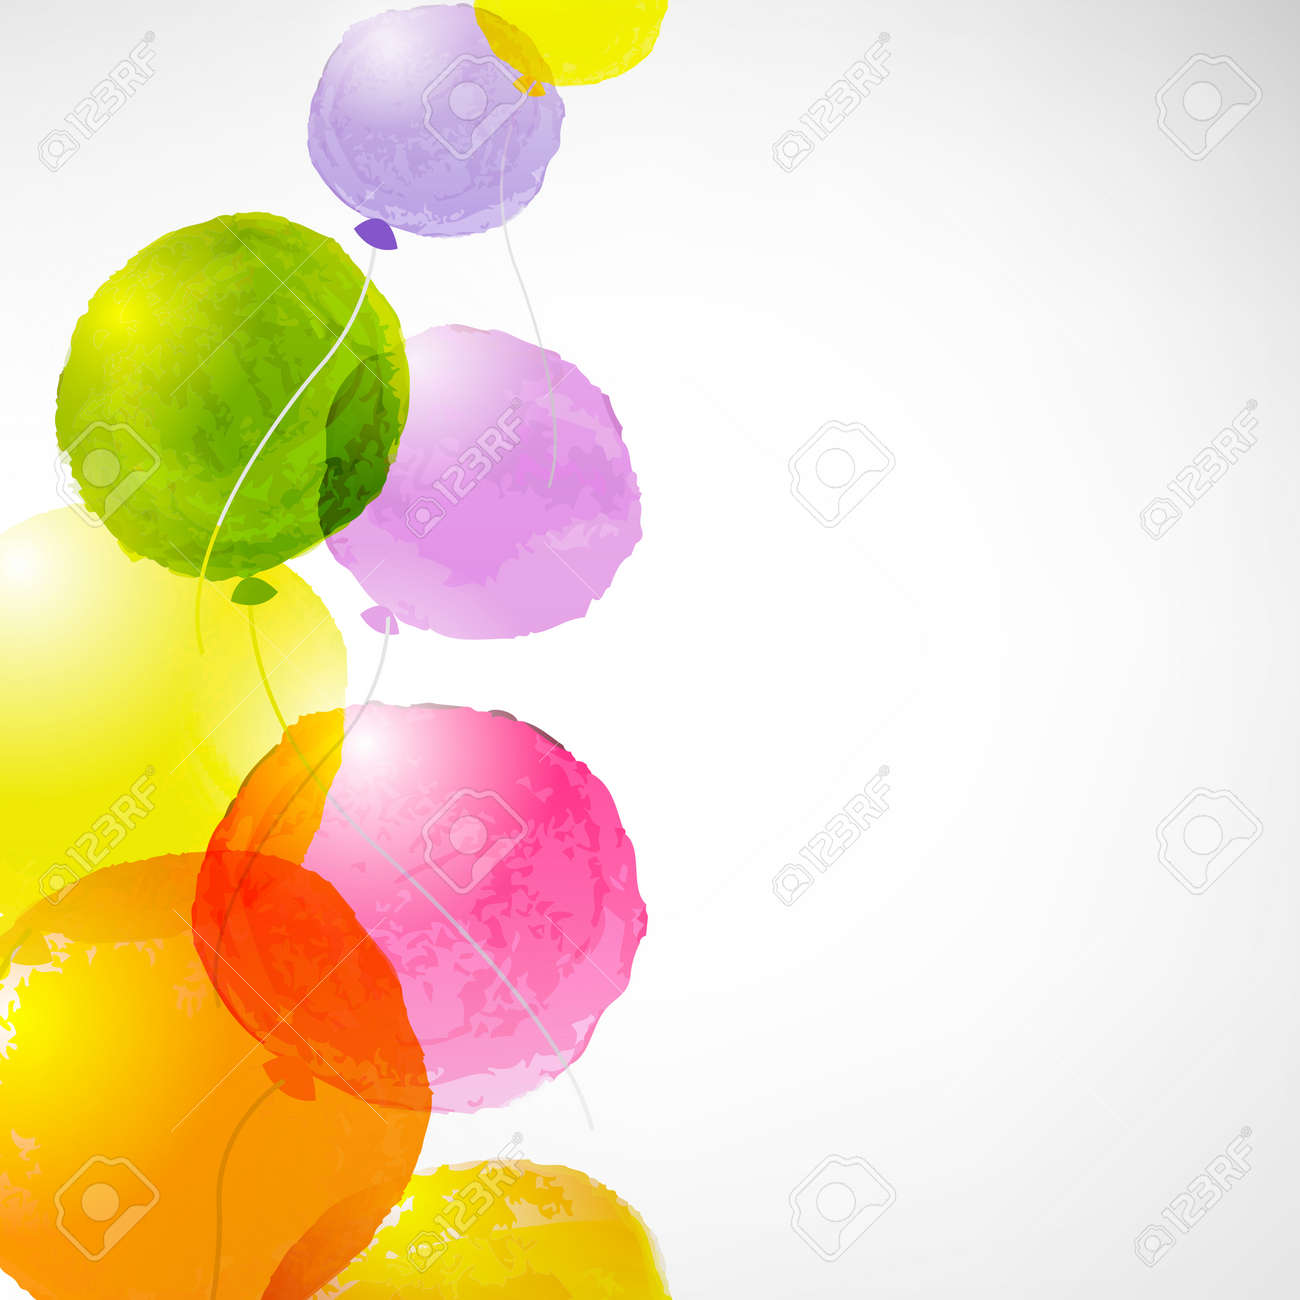 Watercolor Balloon, With Gradient Mesh, Vector Illustration - 29835879